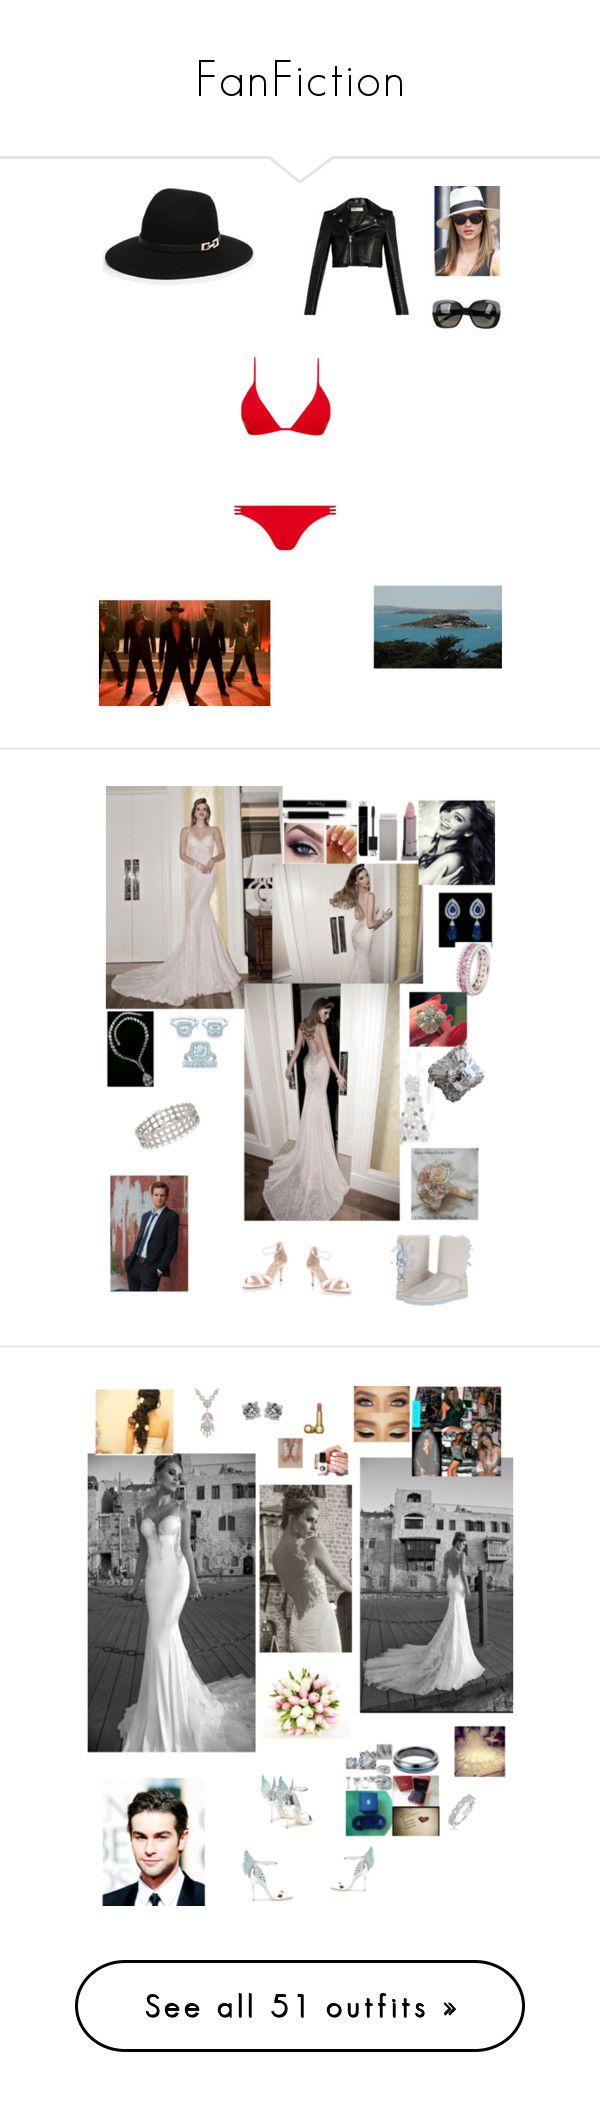 """FanFiction"" by ejmfashionista ❤ liked on Polyvore featuring Bebe, Kerr®, Melissa Odabash, Yves Saint Laurent, Bottega Veneta, Bulgari, Christian Dior, Lipstick Queen, Colette Jewelry and Tiffany & Co."